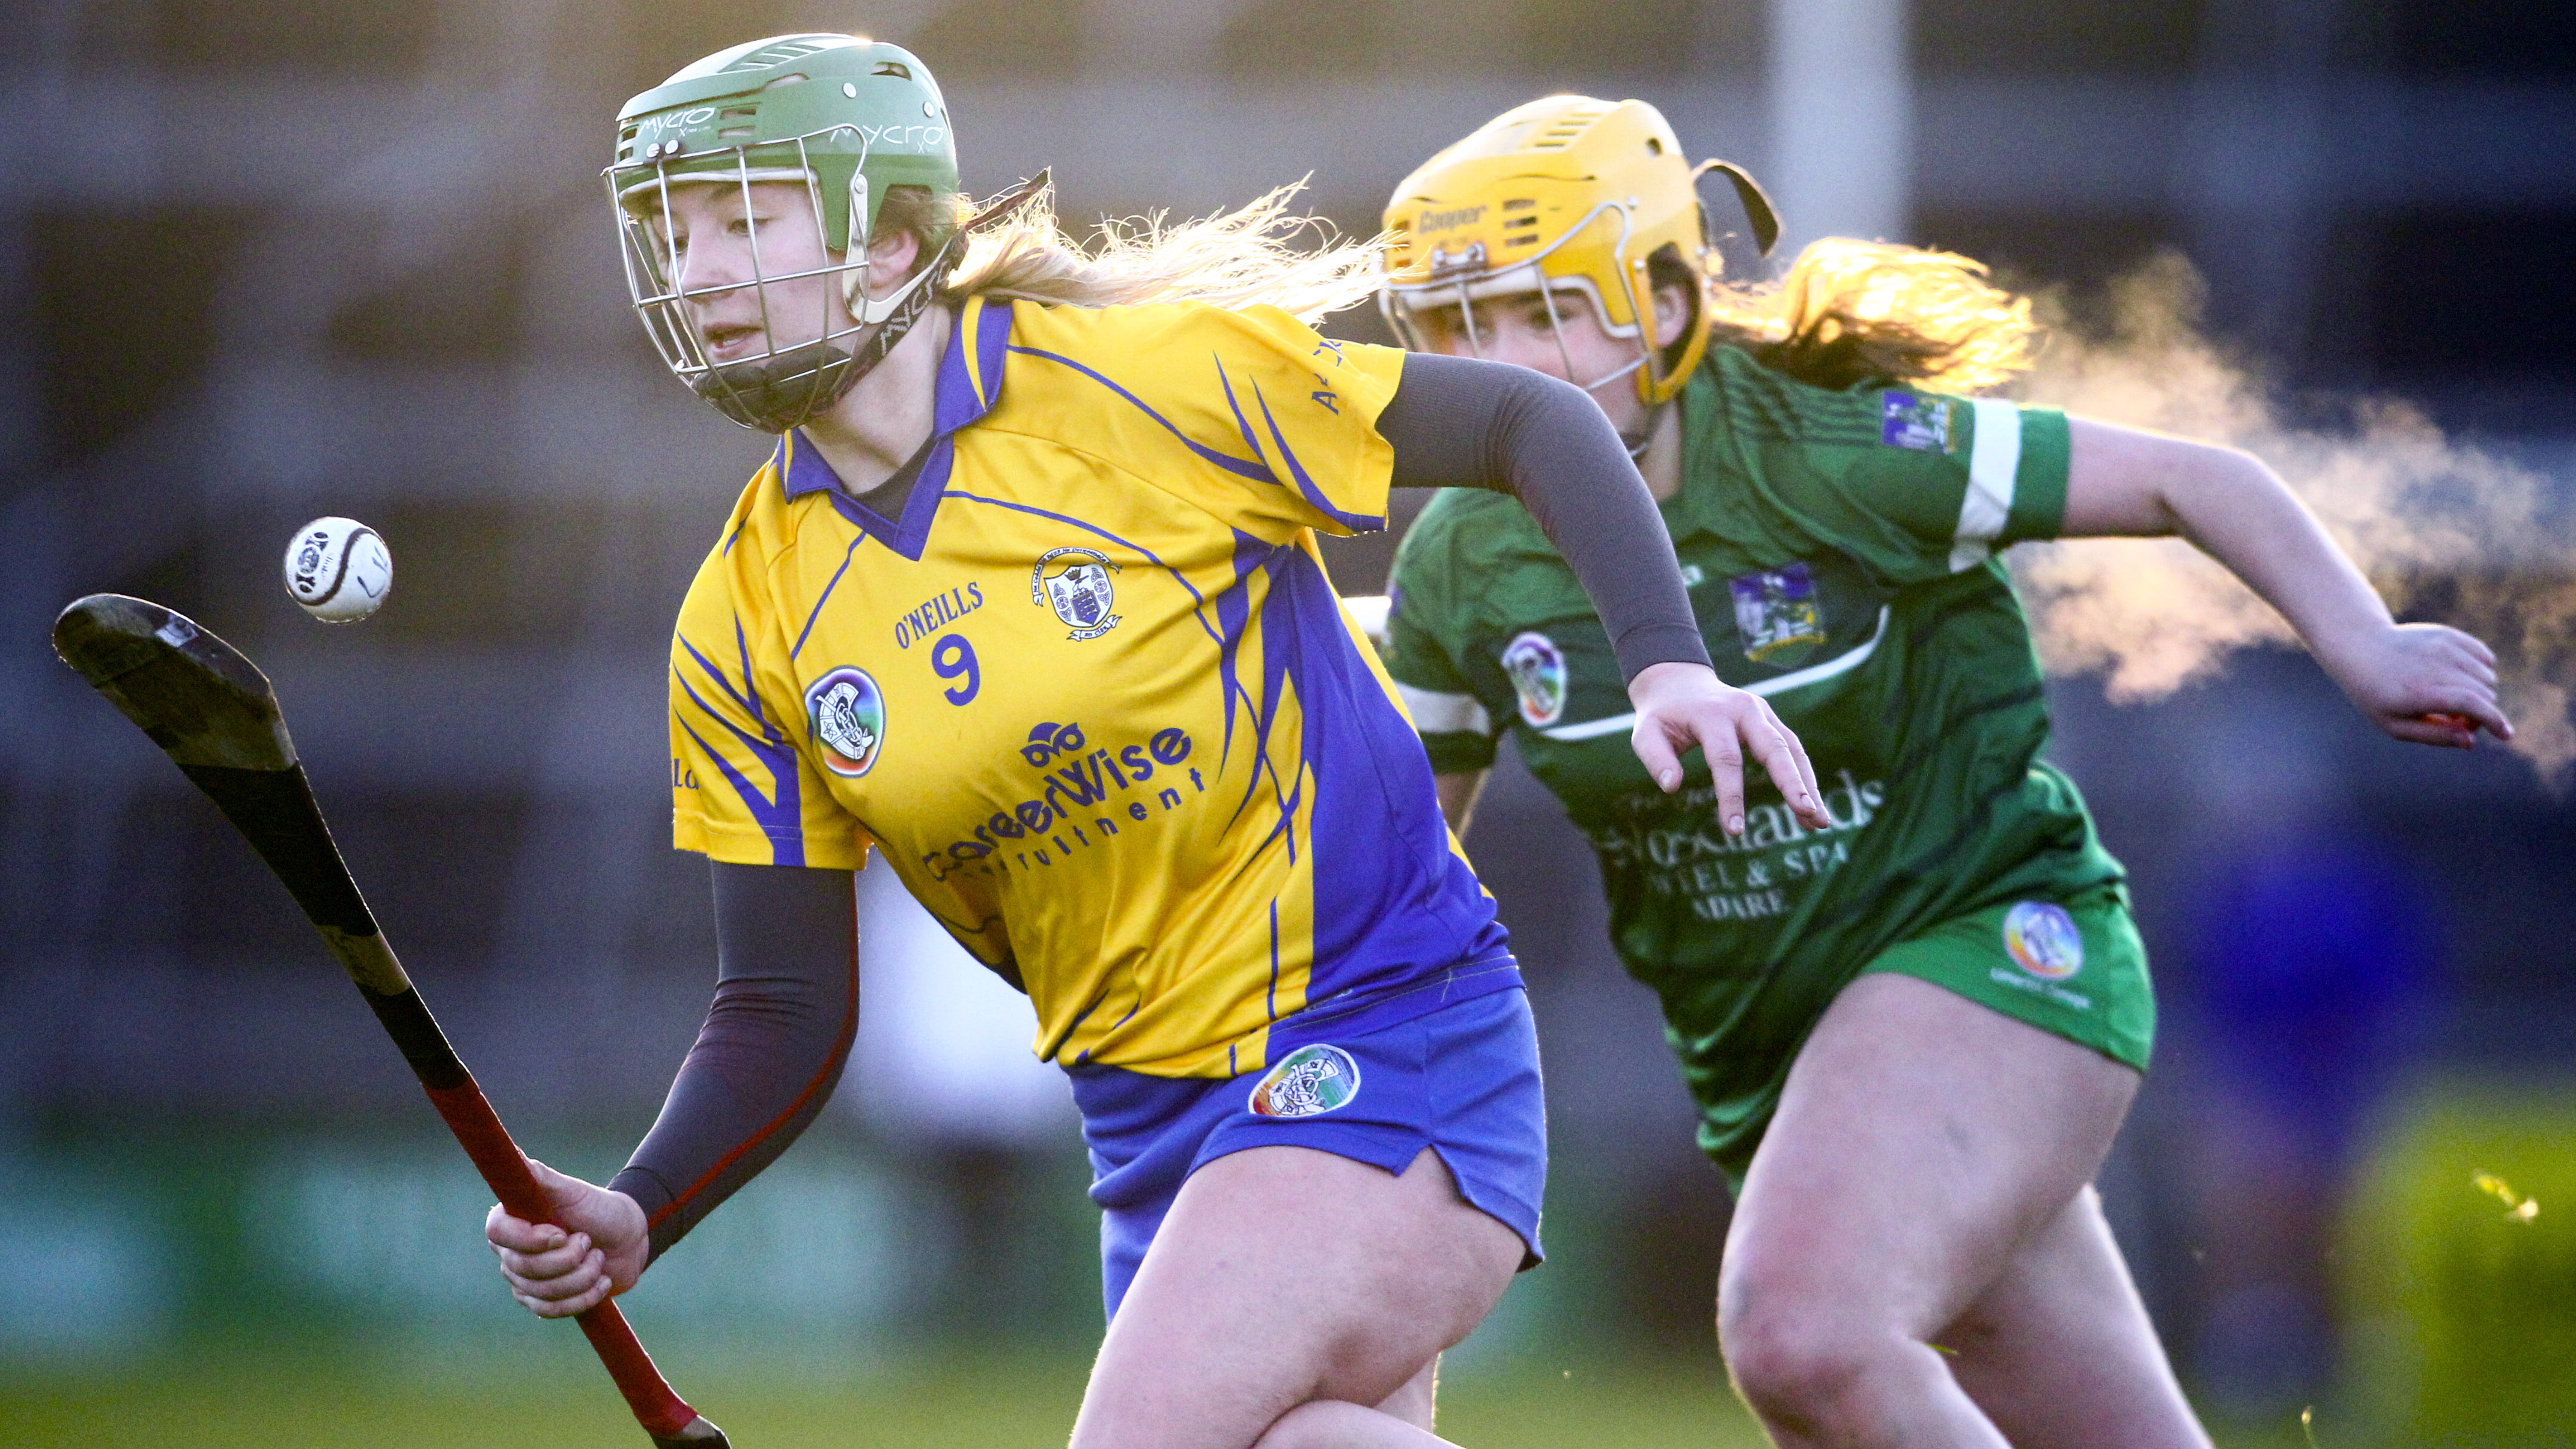 """Our season is on the line"" – Clare's Ger O'Connell"